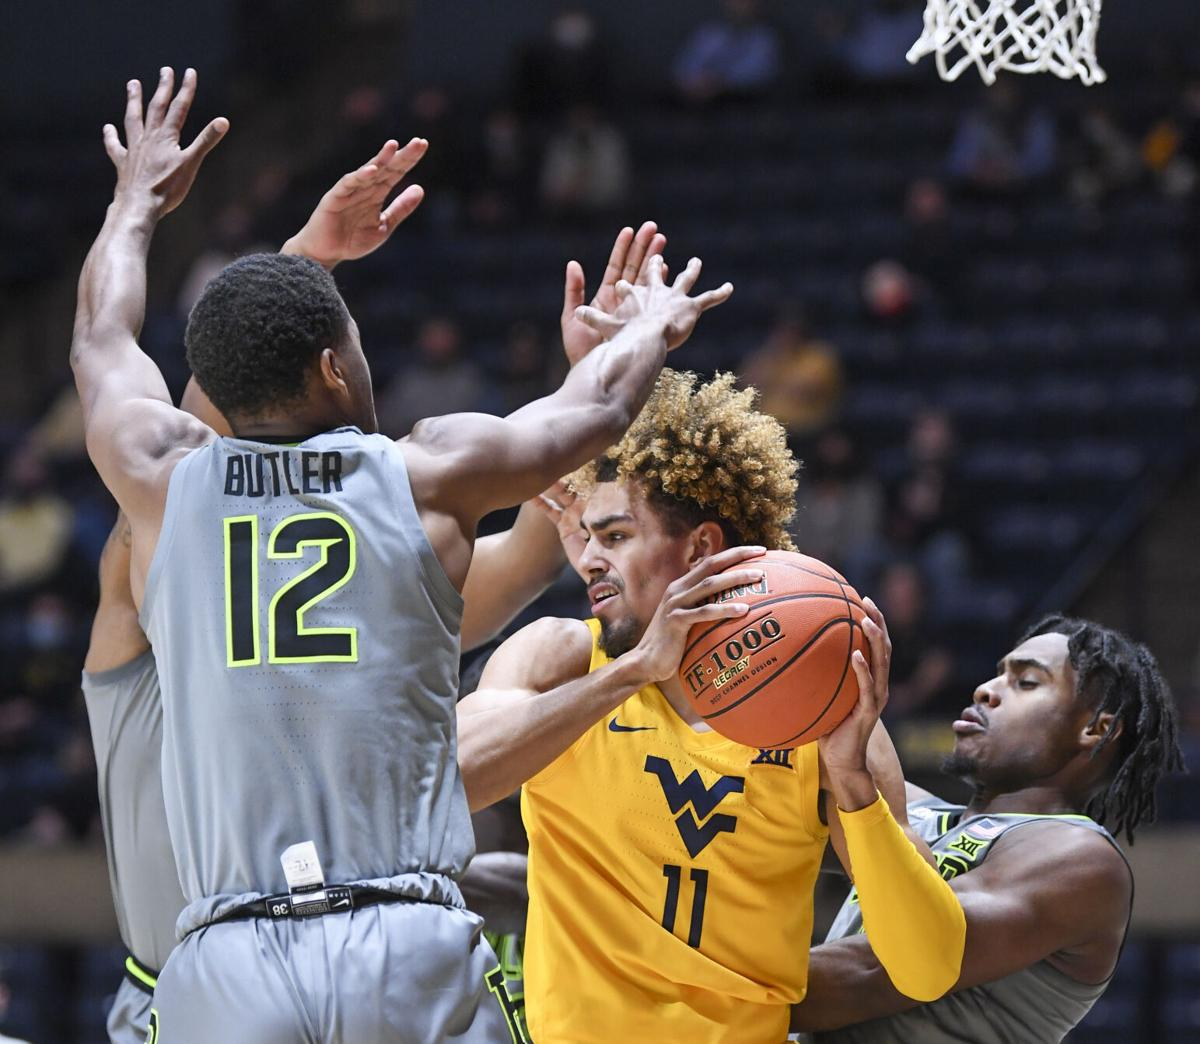 West Virginia forward Emmitt Matthews Jr. (11) is guarded by Baylor's Jared Butler (12) in WVU's loss against Baylor on March 2, 2021.